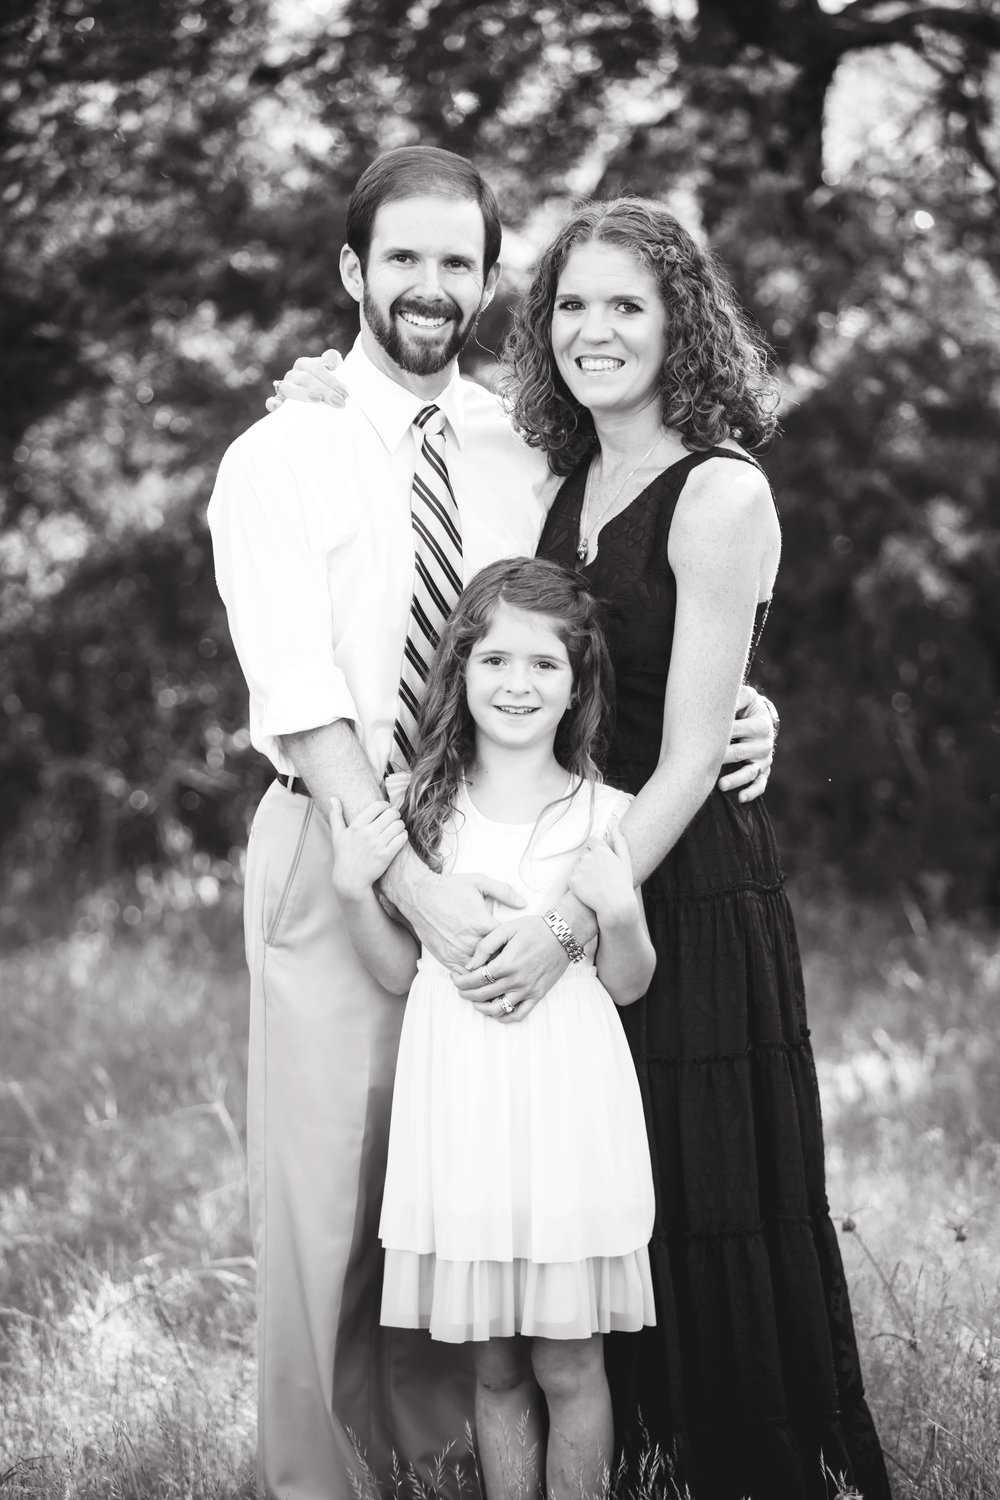 Marble_Falls_Horseshoe_Bay_Photographer_Turner_Family_02.jpg